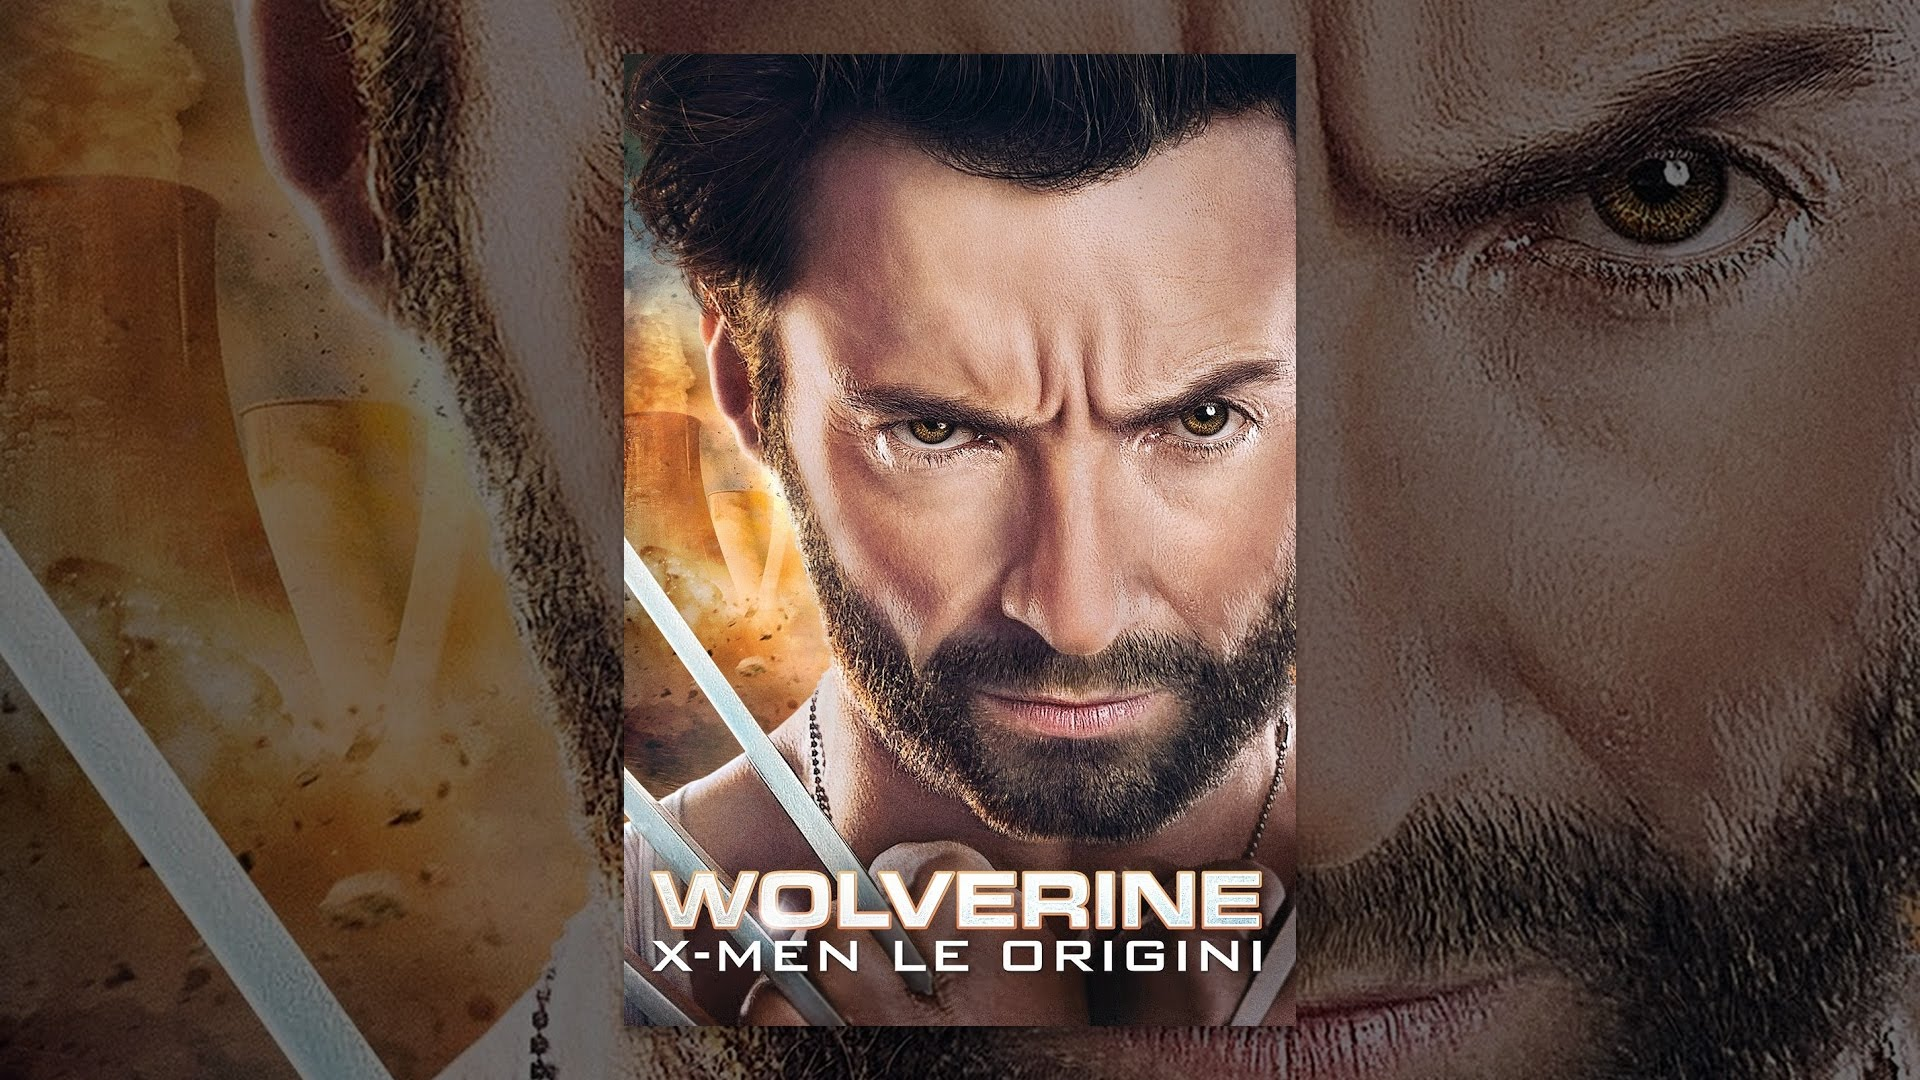 X men: le origini u2013 wolverine 2009 road to logan 1 il zinefilo